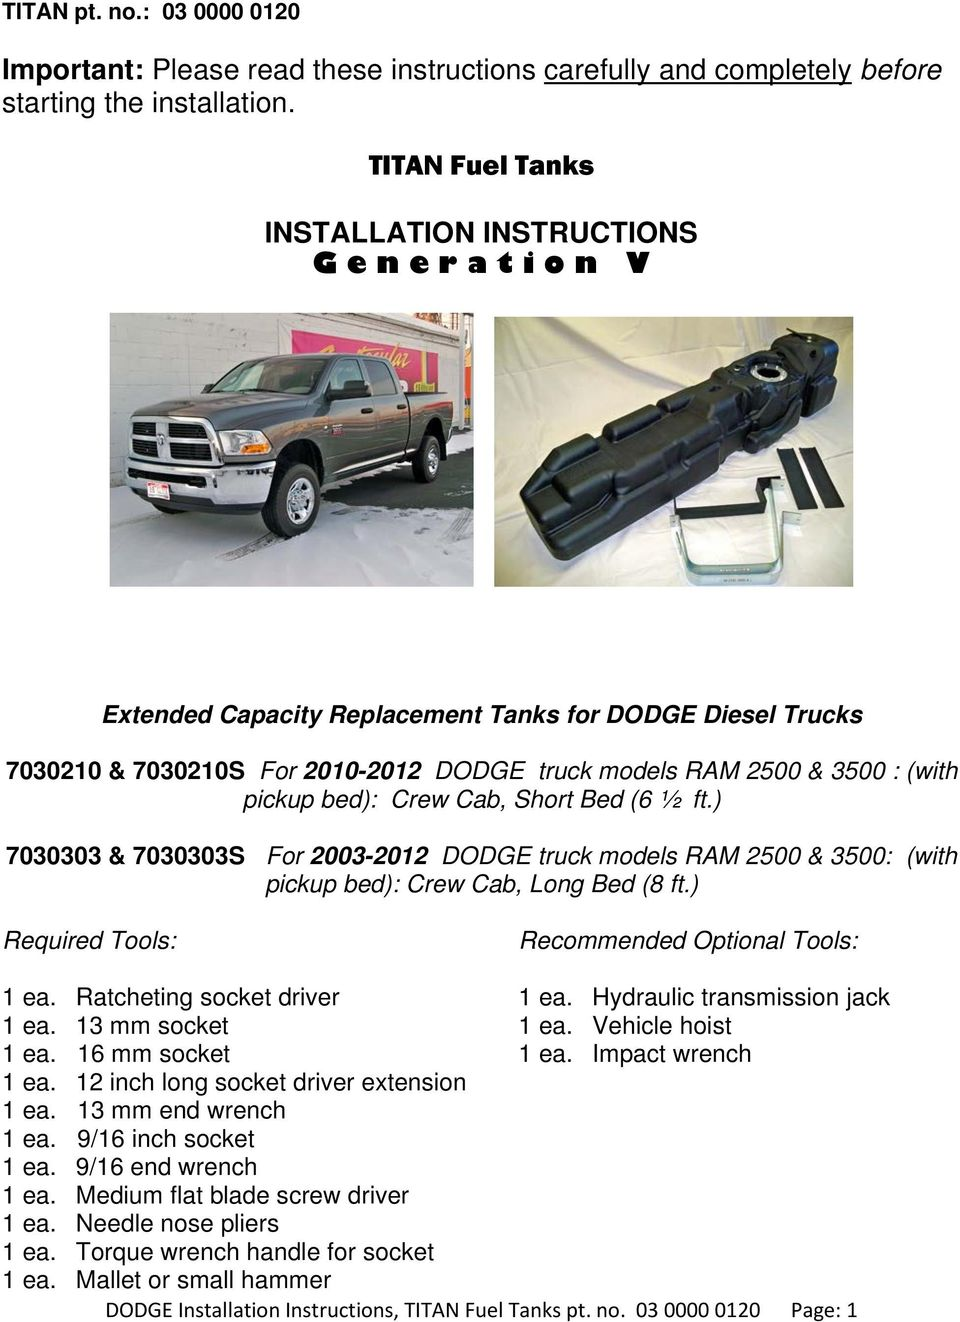 (with pickup bed): Crew Cab, Short Bed (6 ½ ft.) 7030303 & 7030303S For 2003-2012 DODGE truck models RAM 2500 & 3500: (with pickup bed): Crew Cab, Long Bed (8 ft.